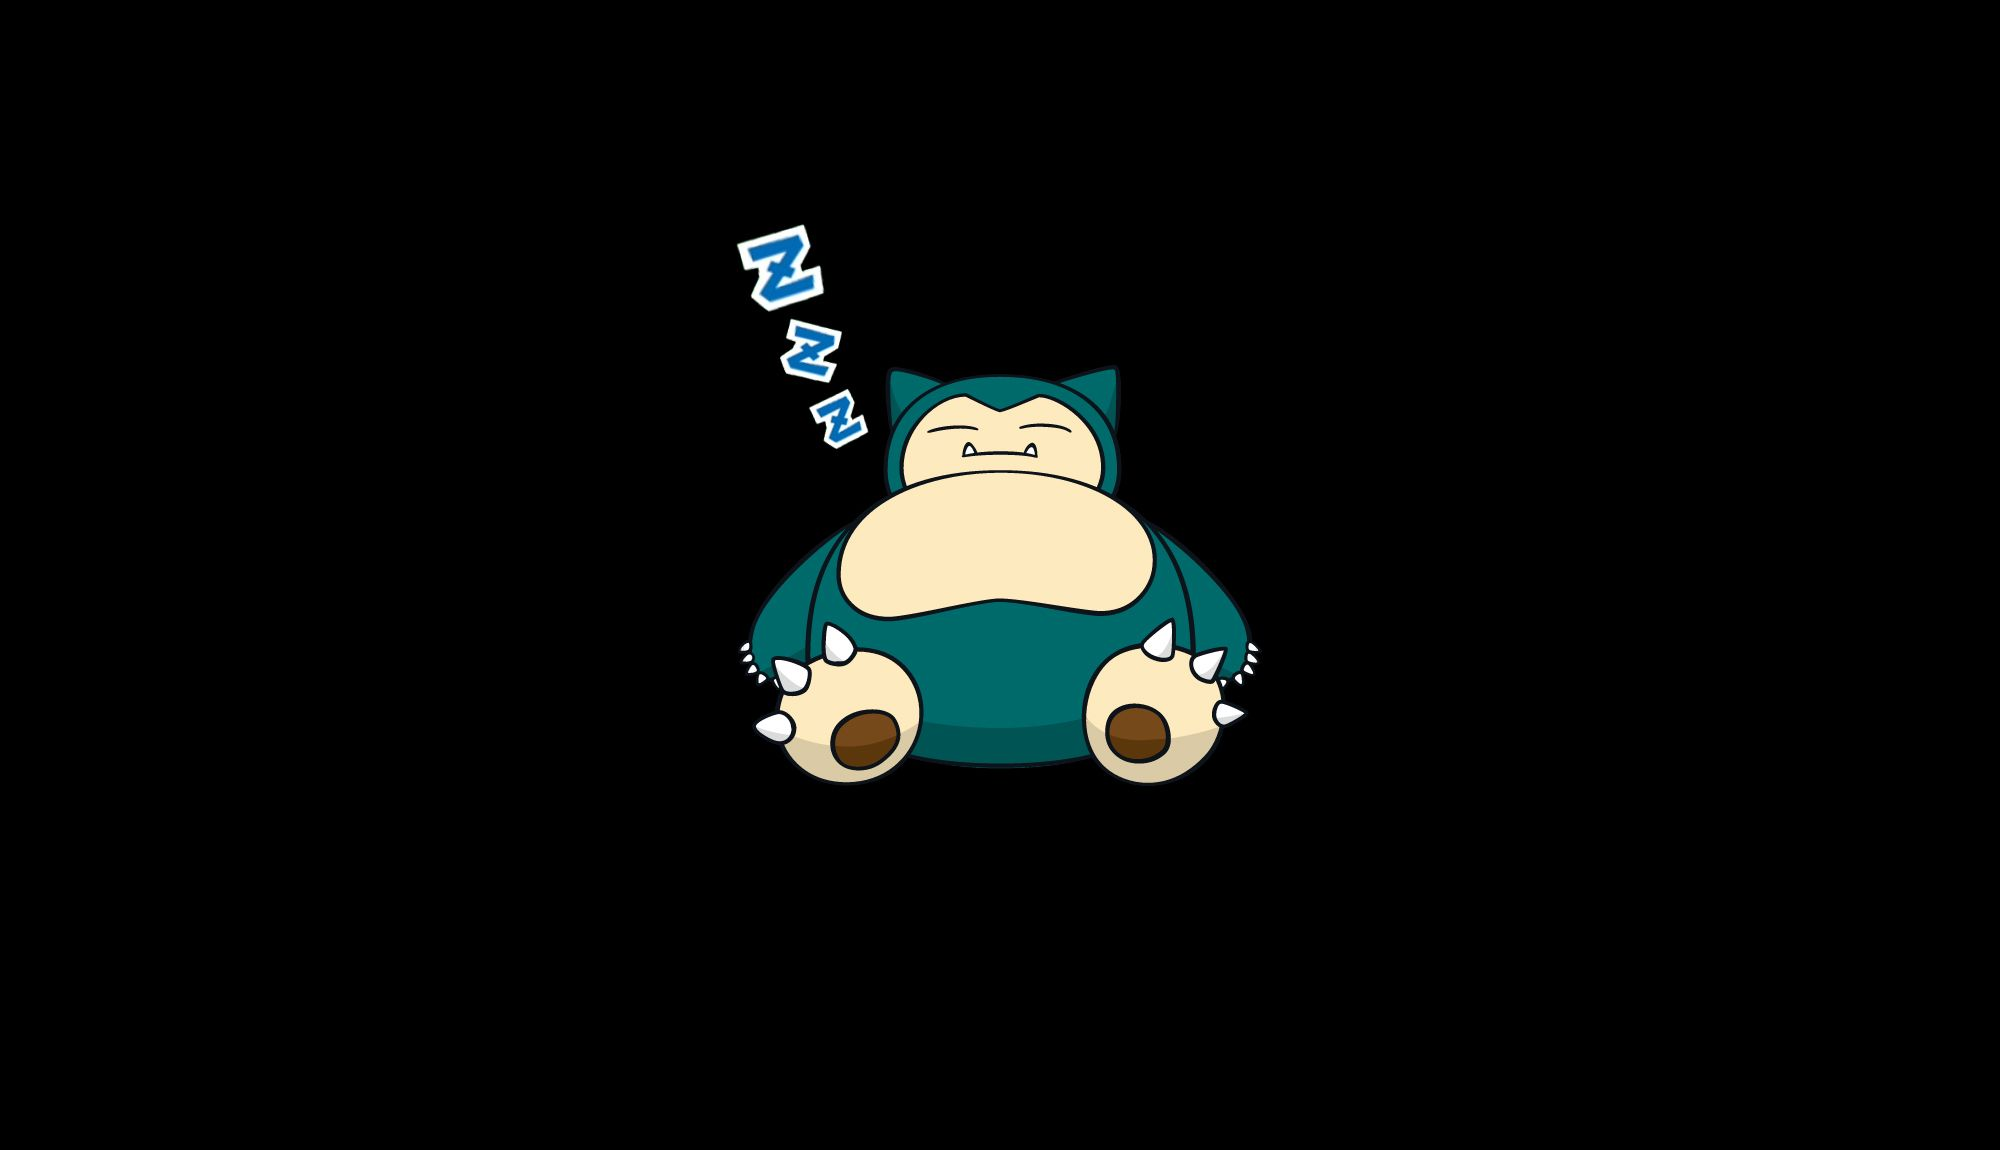 Snorlax Wallpaper Full HD Pictures